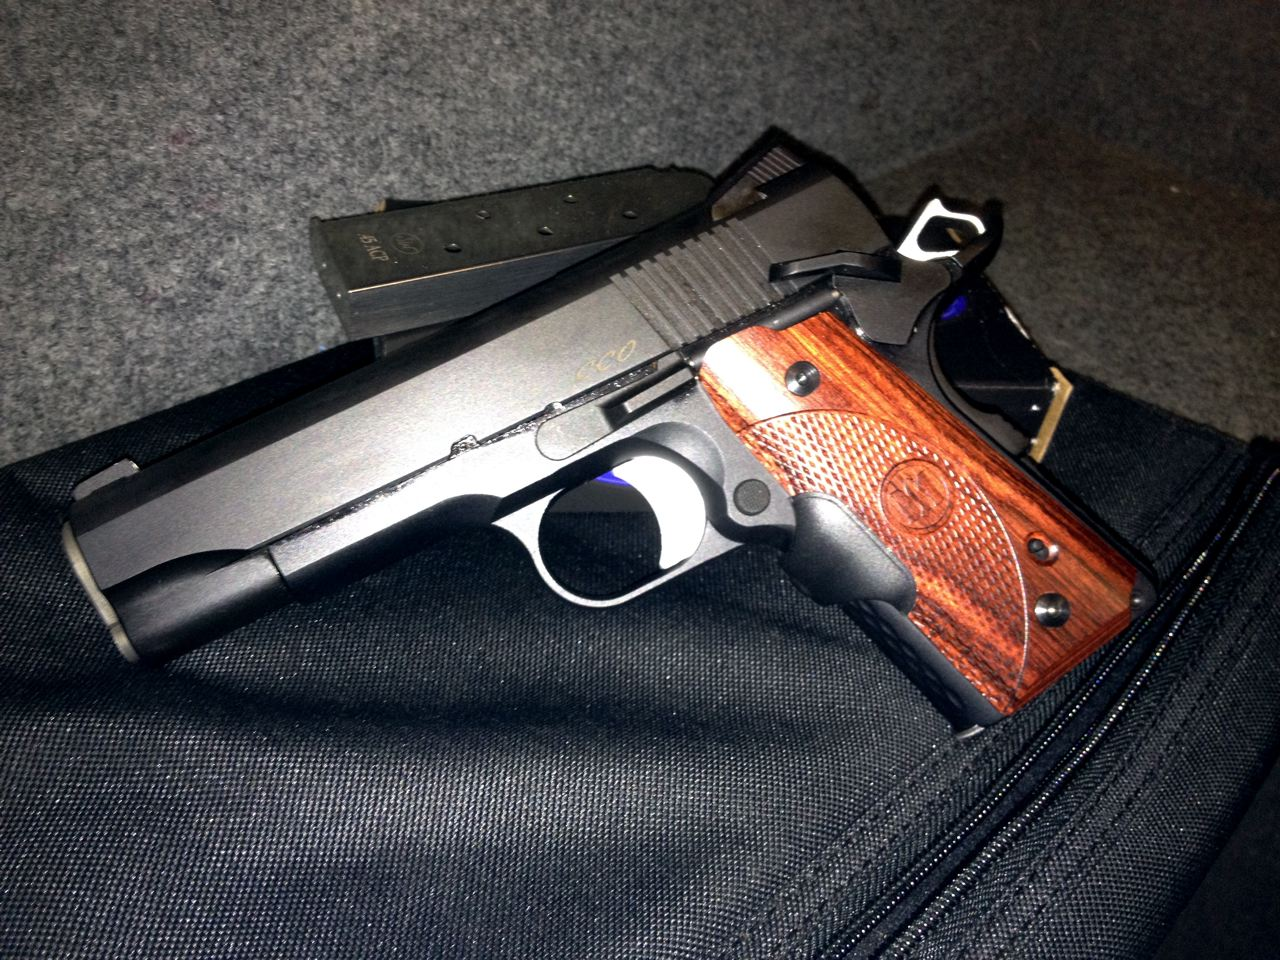 Anyone use CT Master Series Grips on 1911?-img_0857_2.jpg